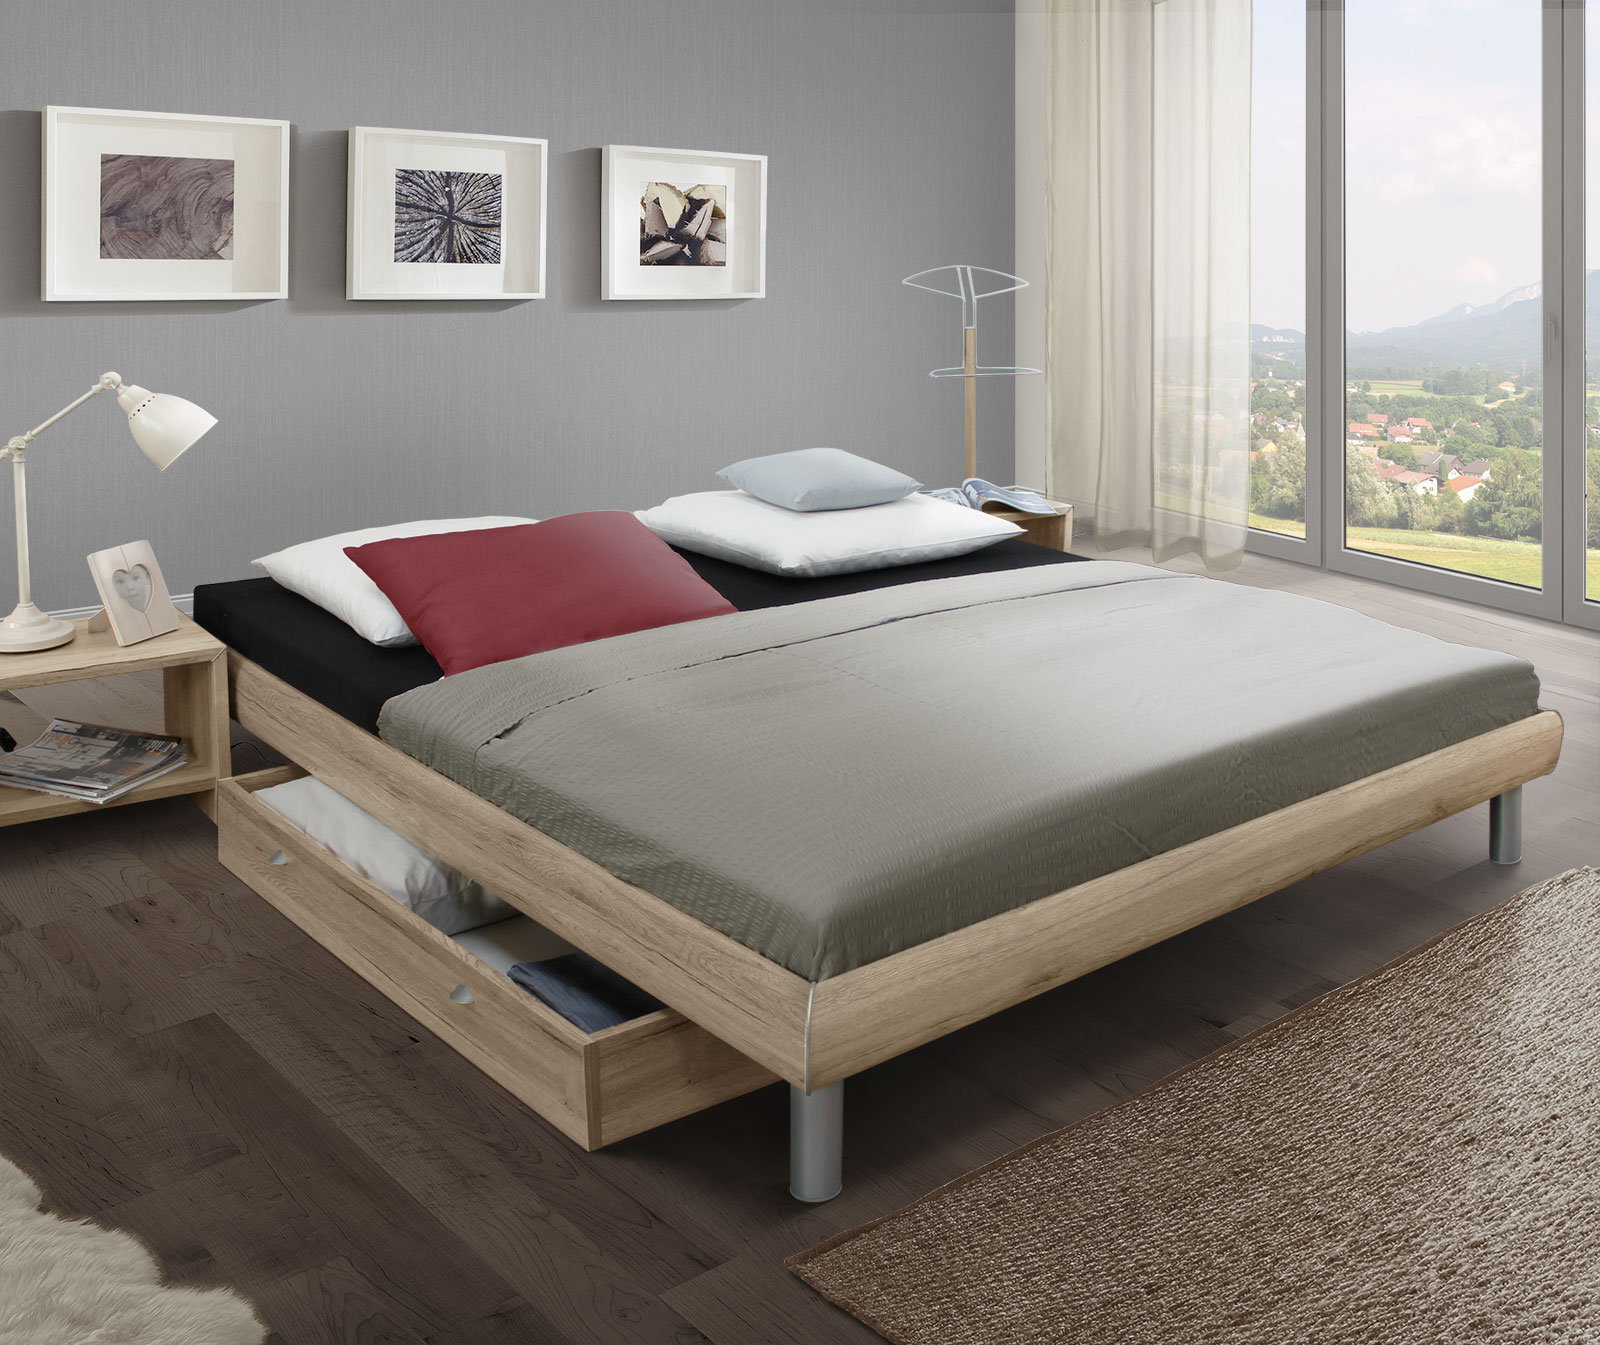 gem tliche schlafst tte die liege tanaro in der dekor variante. Black Bedroom Furniture Sets. Home Design Ideas